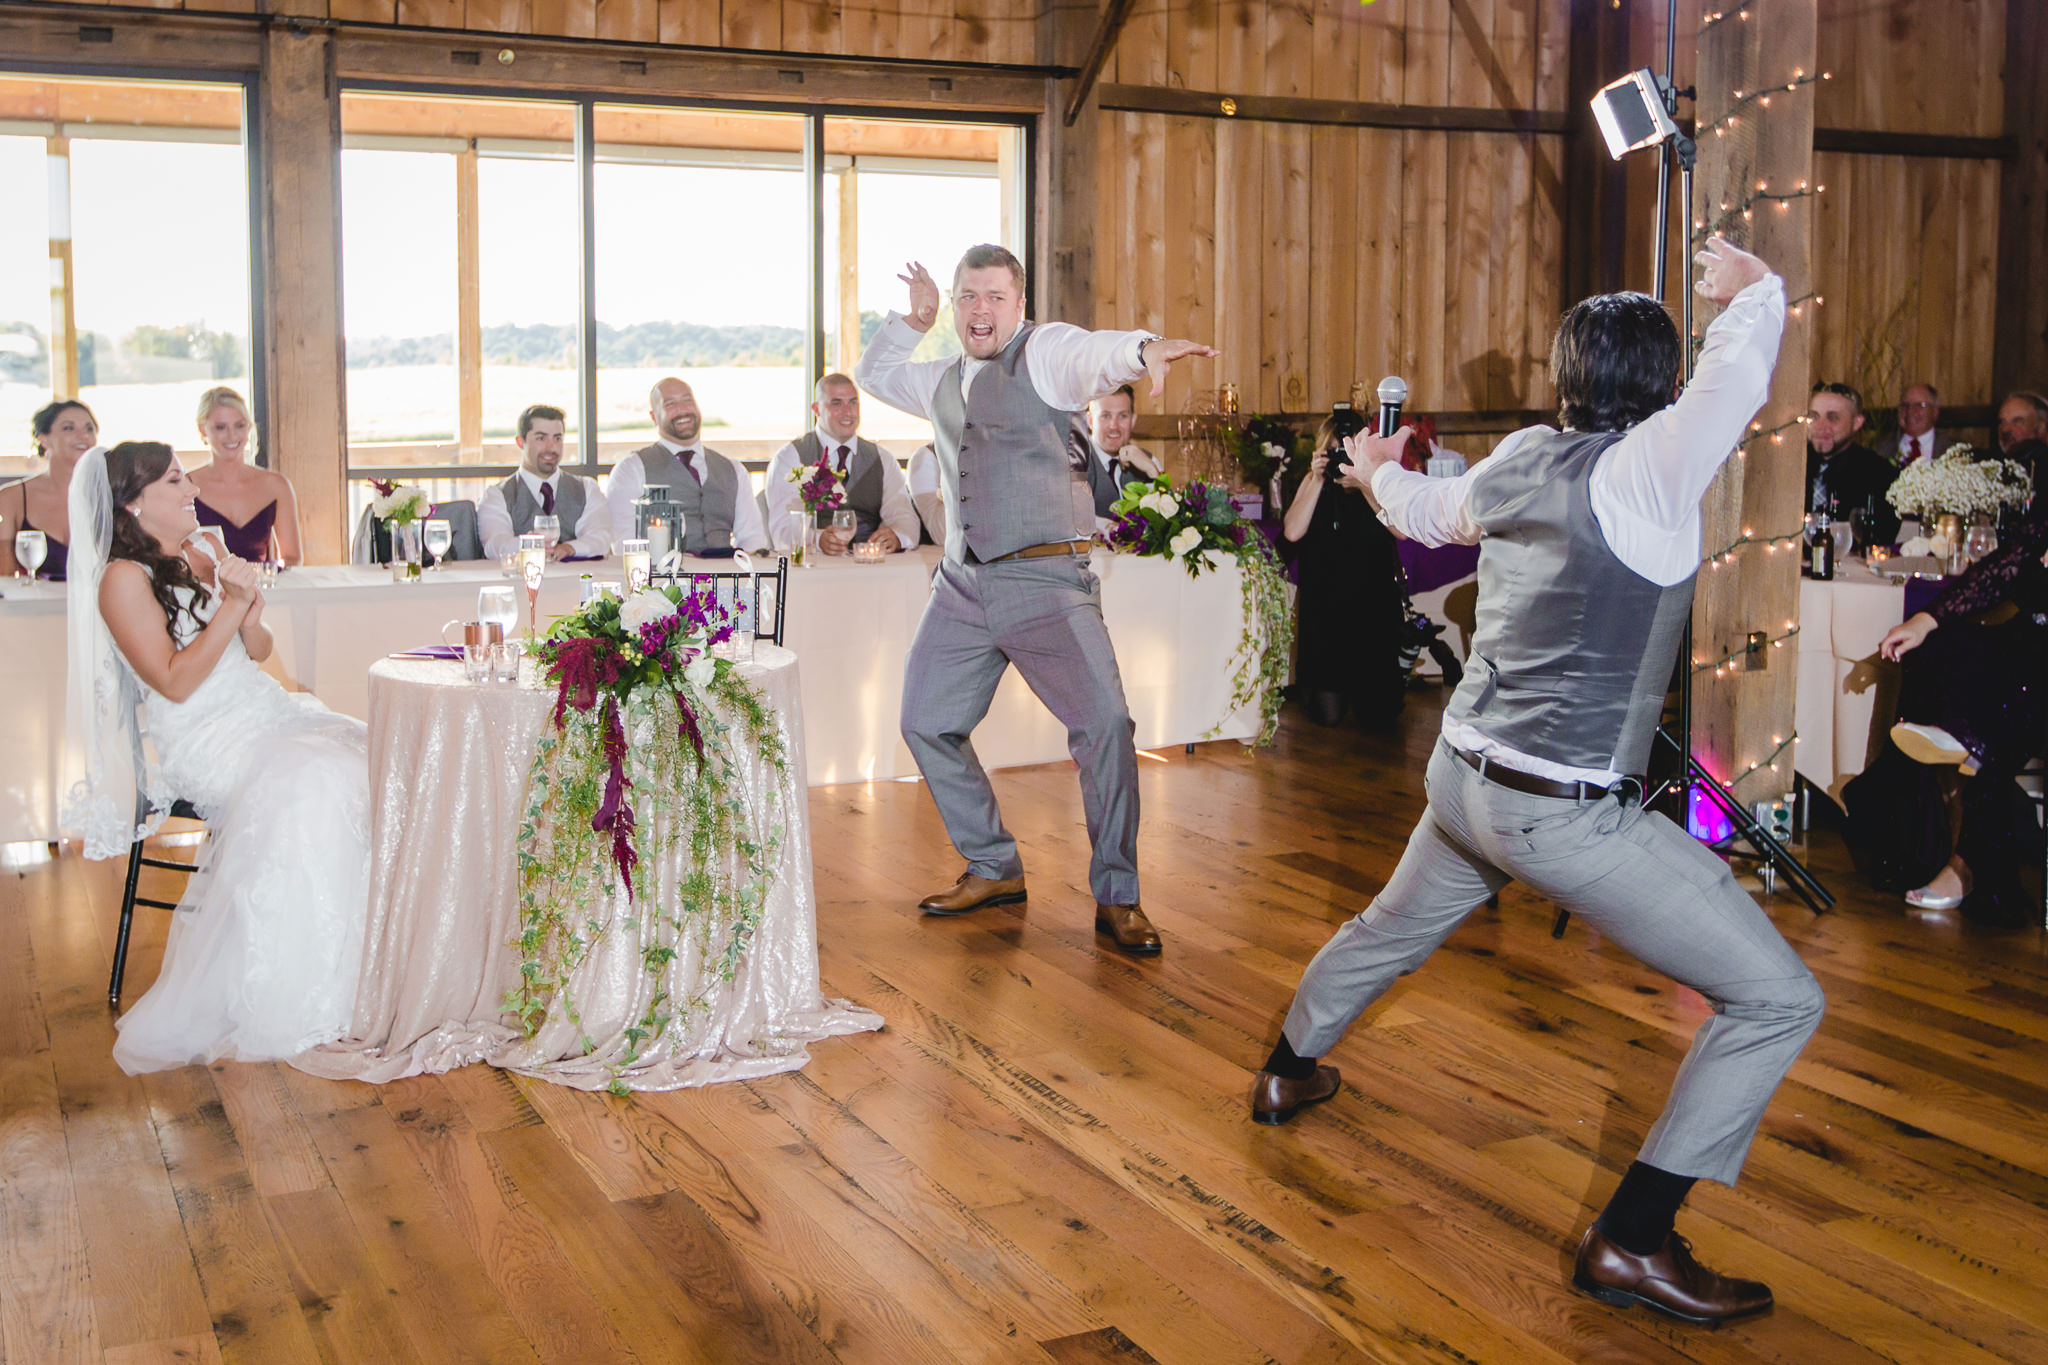 Barn dance wedding